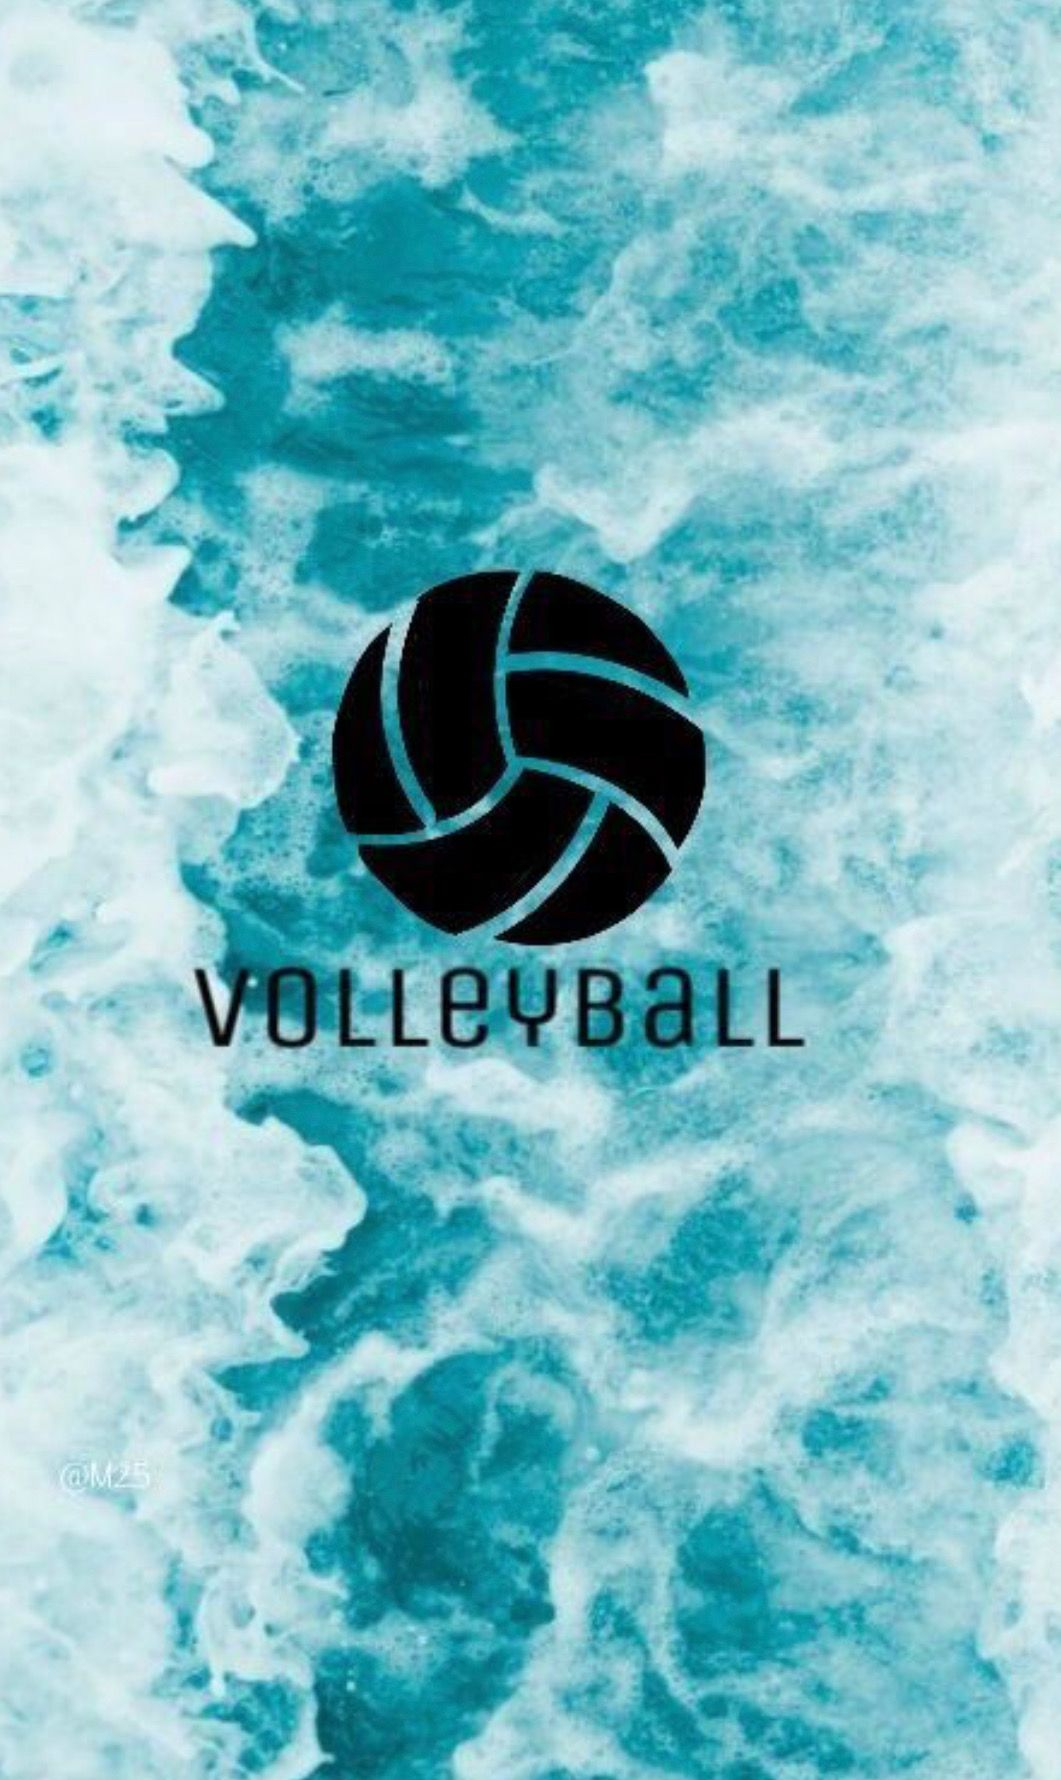 Pin By Hailey On Background Volleyball Wallpaper Volleyball Backgrounds Volleyball Drawing